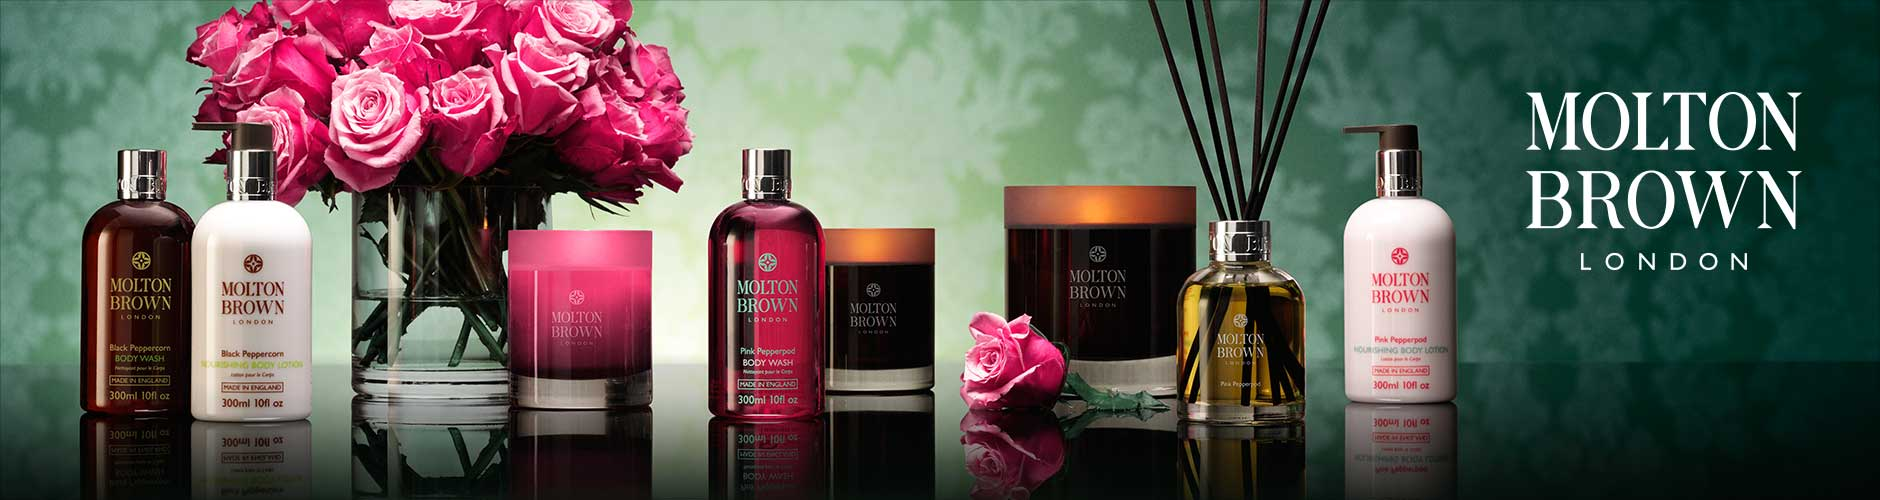 Beauty: Molton Brown